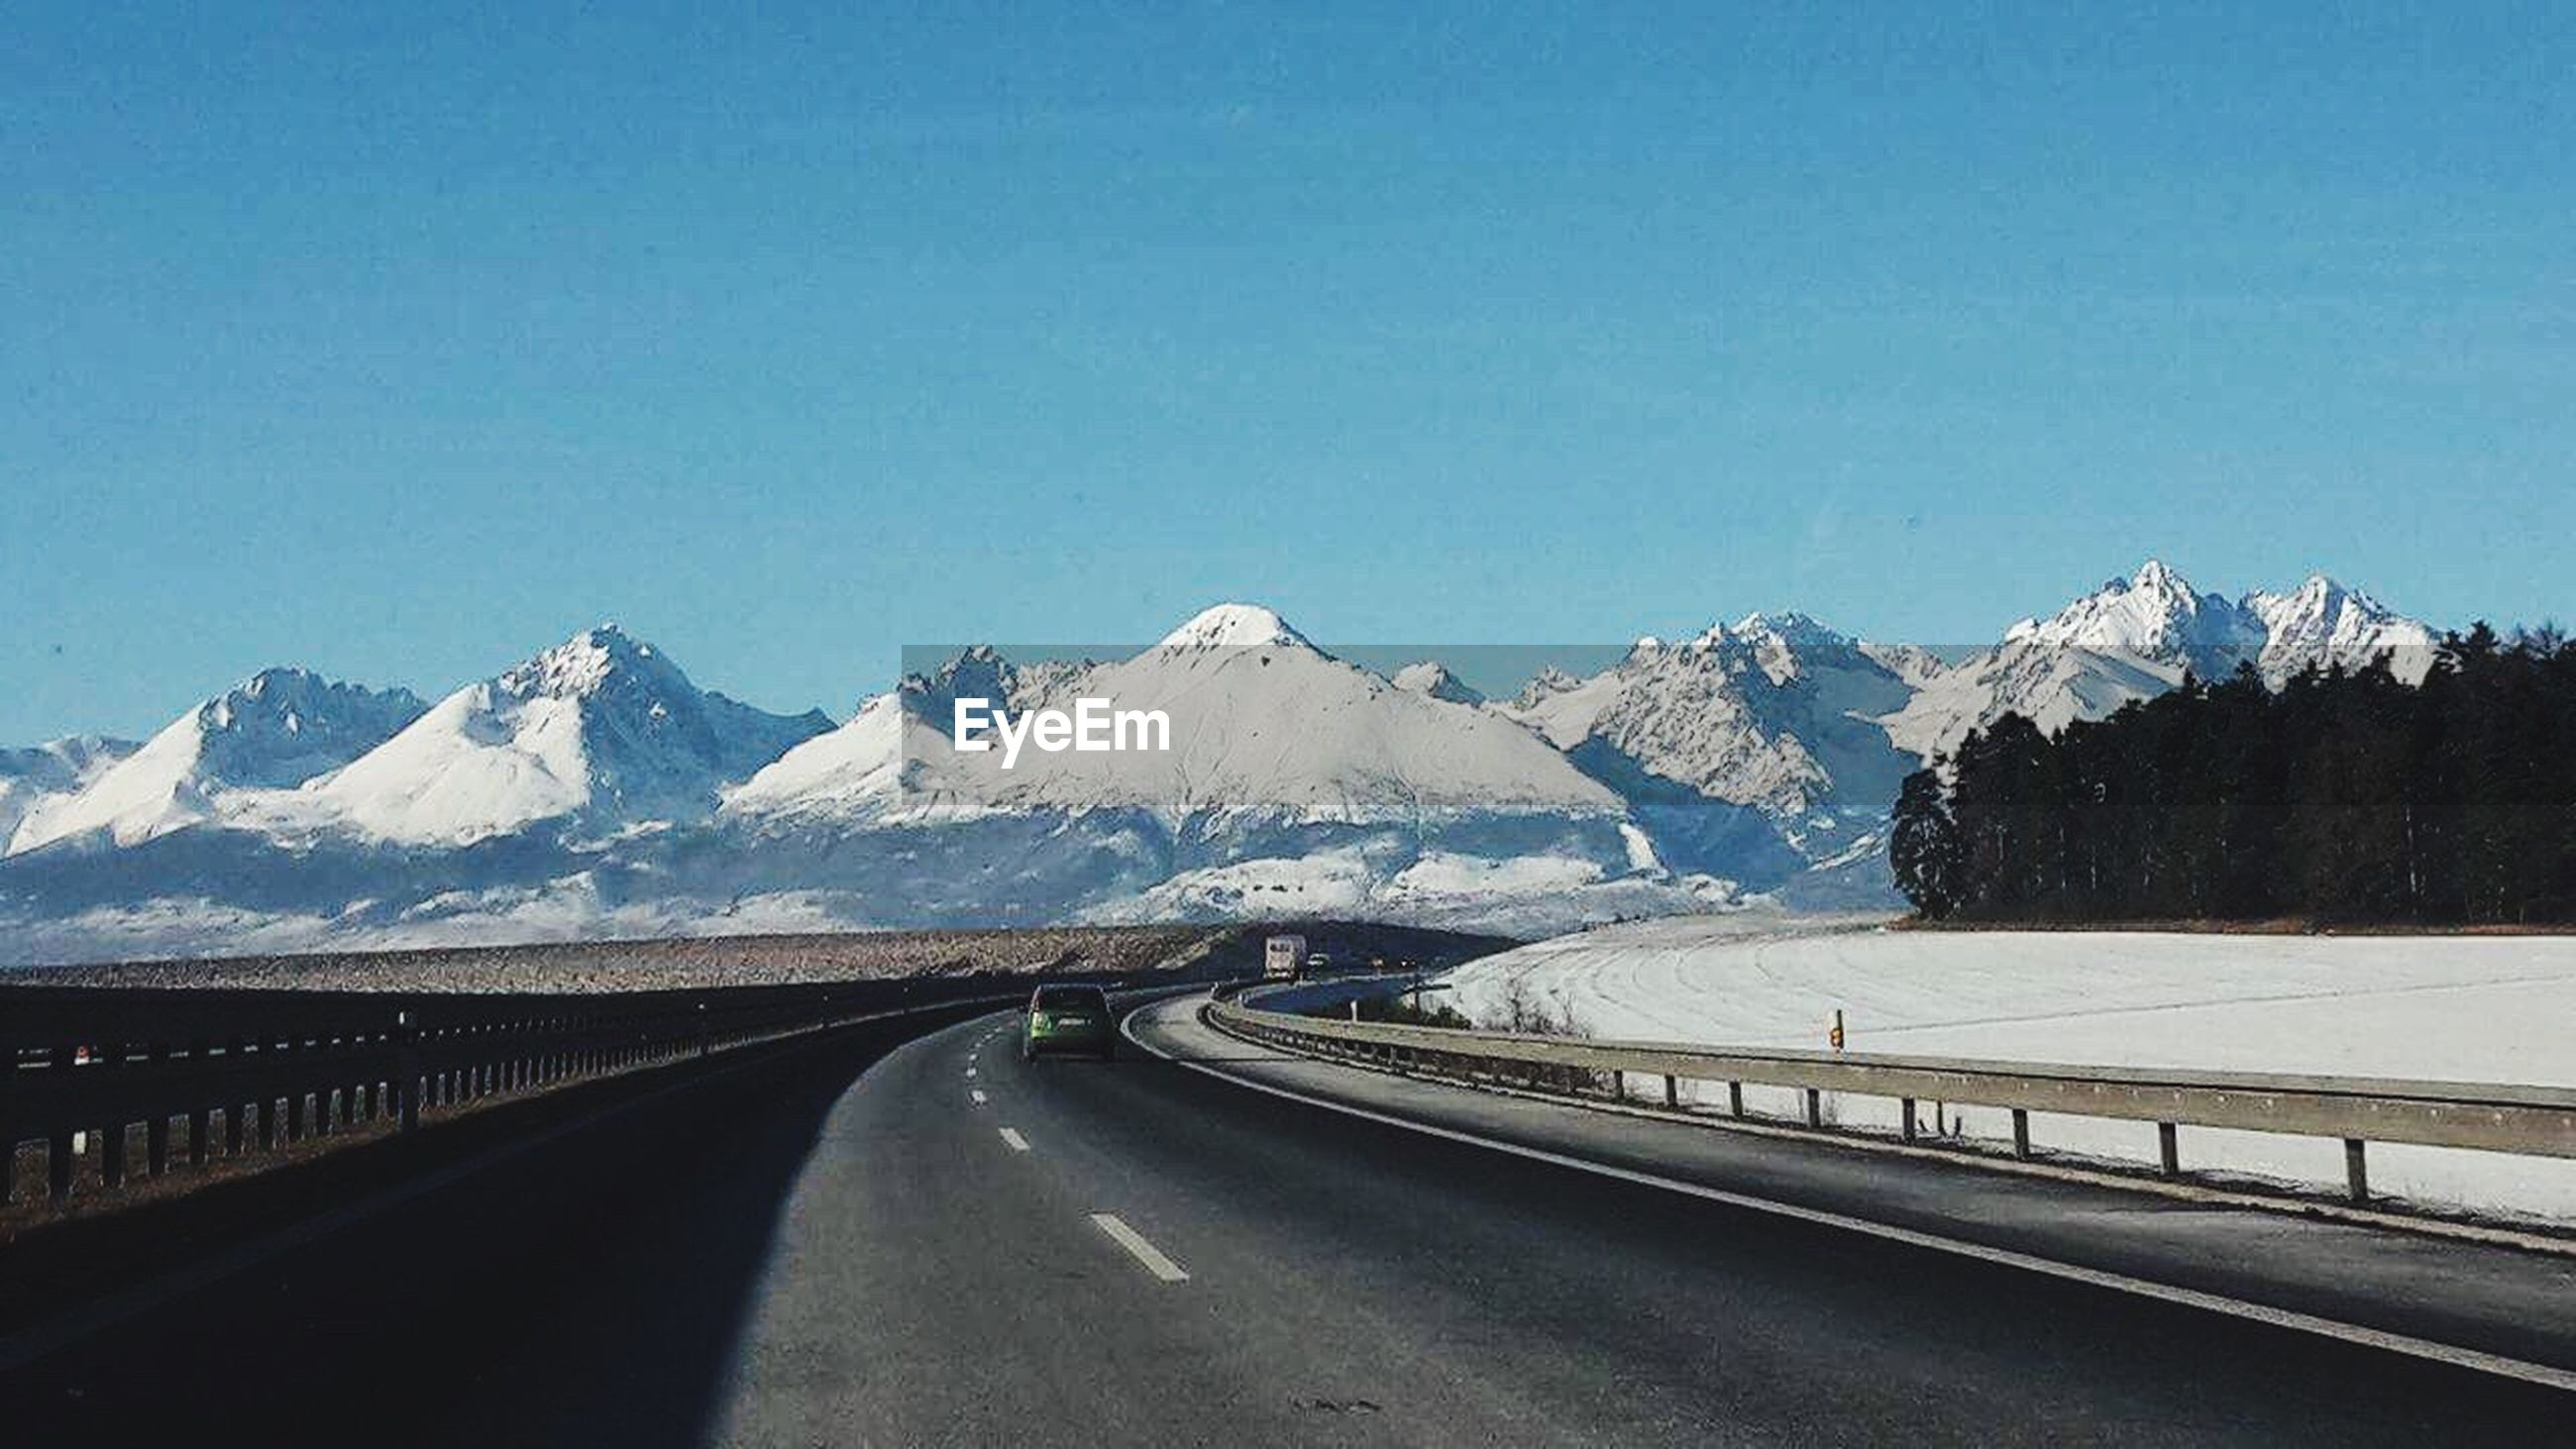 mountain, road, mountain range, the way forward, blue, landscape, snow, cold temperature, scenics, transportation, beauty in nature, clear sky, curve, idyllic, nature, outdoors, winter, day, no people, winding road